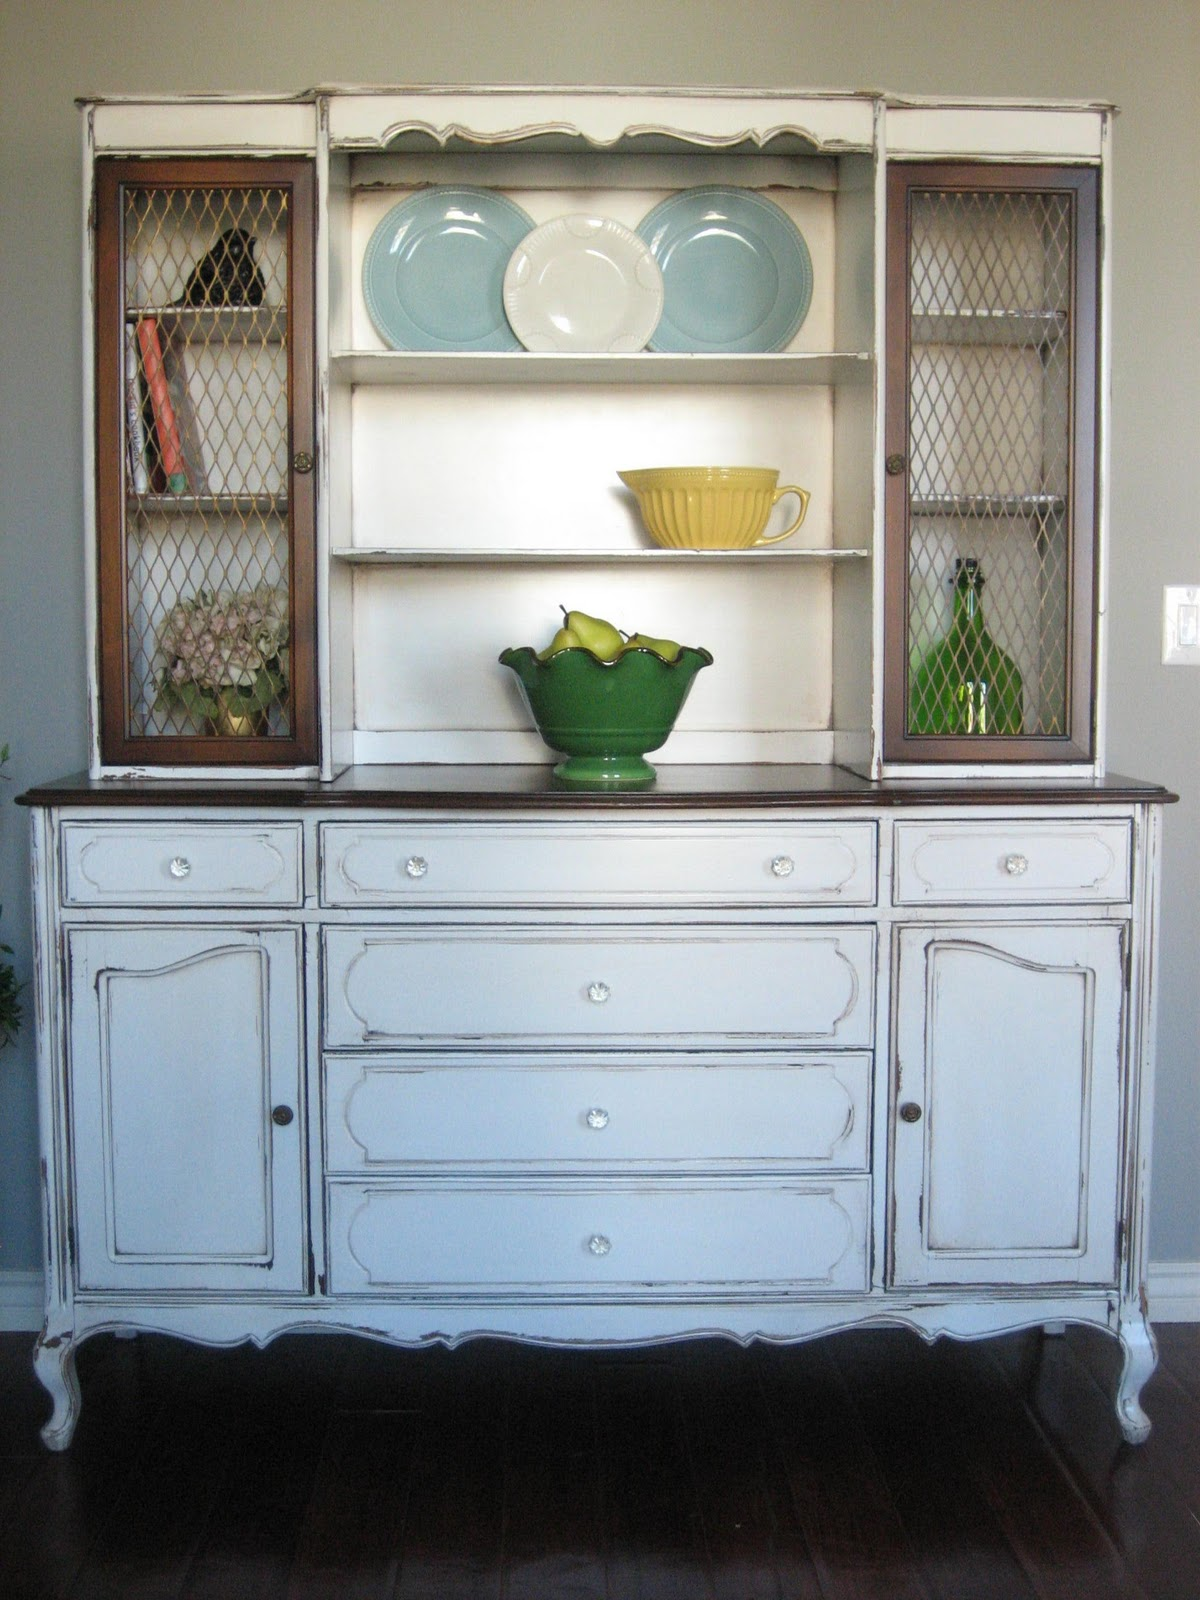 Creamy White Hutch With A Chippy Distressed Finish Dark Brown Stained Buffet Top And Upper Cabinets Have Brass Chicken Wire Hardware